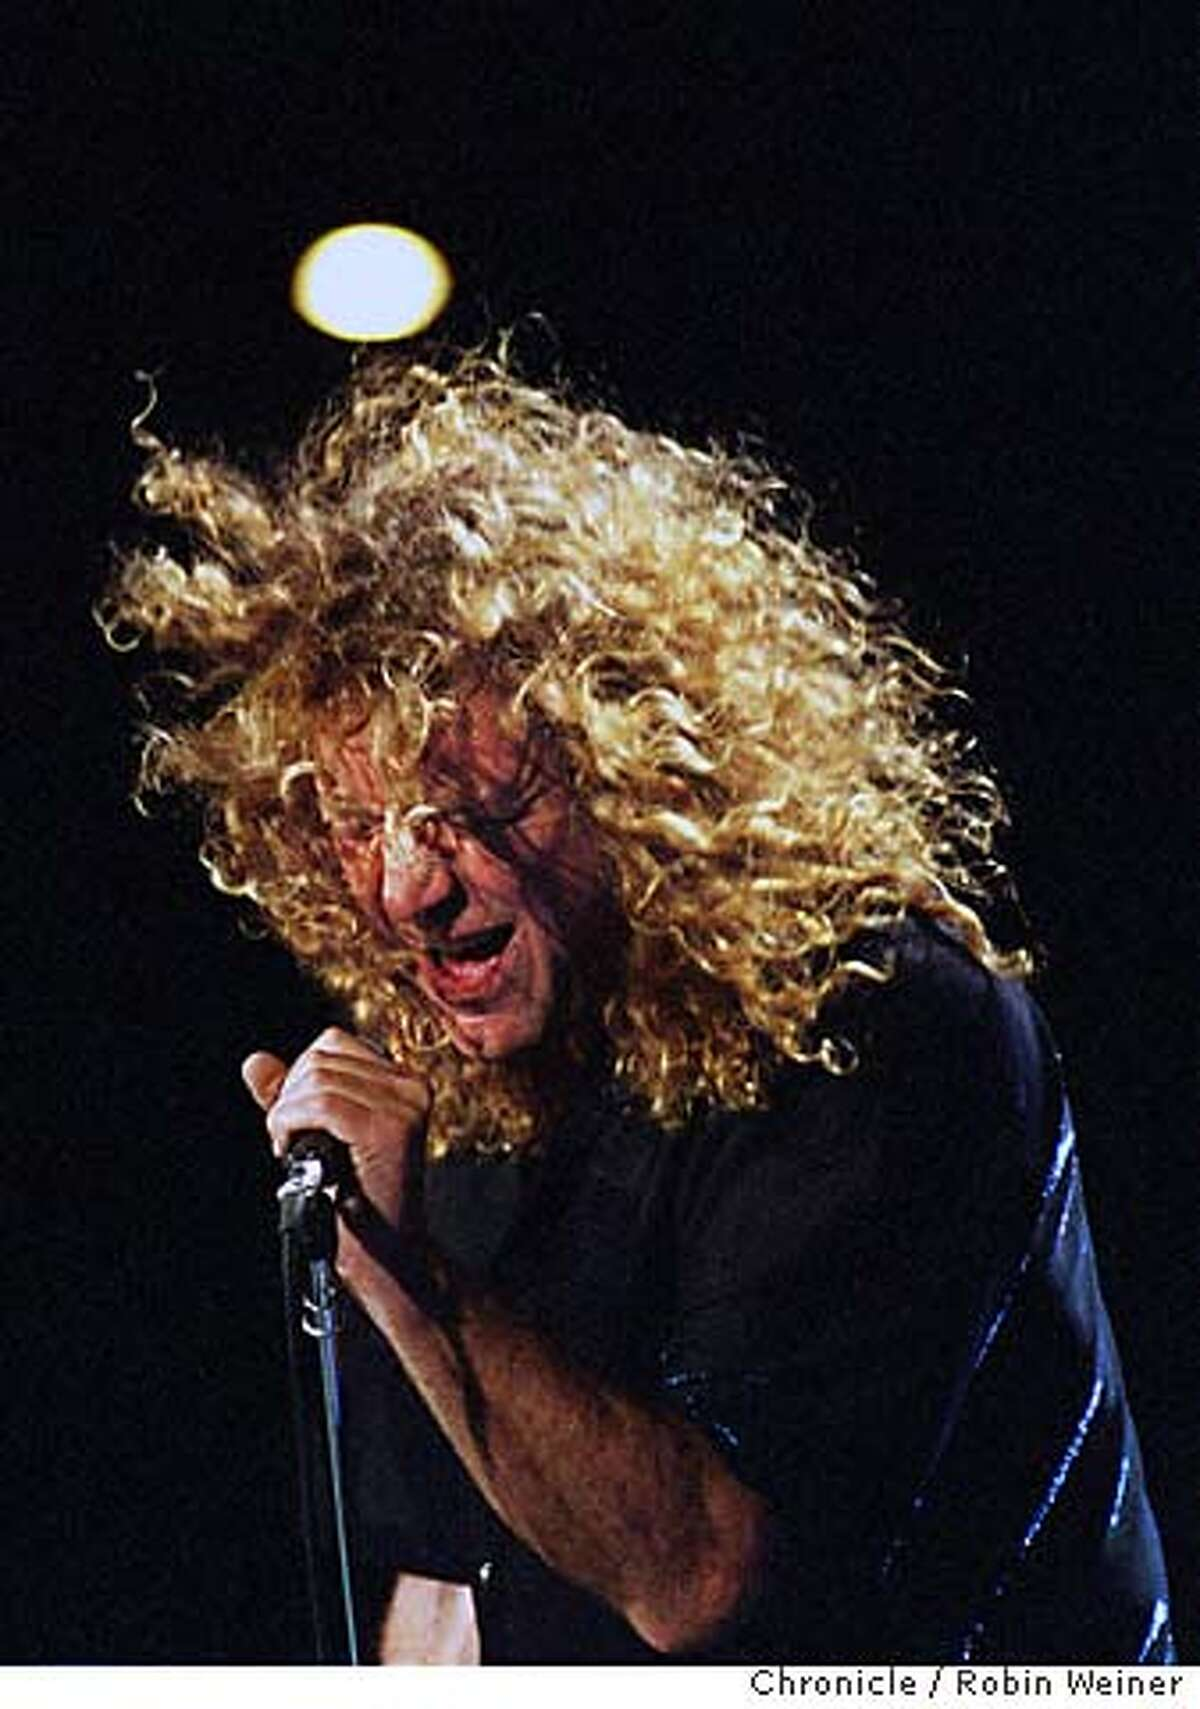 PAGEPLANT3/C/12SEP98/DD/RW Lead singer Robert Plant energizes an opening song during a Led Zeppelin reunion with guitarist Jimmy Page at the Shoreline Amphitheater in Mountain View. BY ROBIN WEINER/FOR THE CHRONICLE ONE TIME USE ONLY CAT